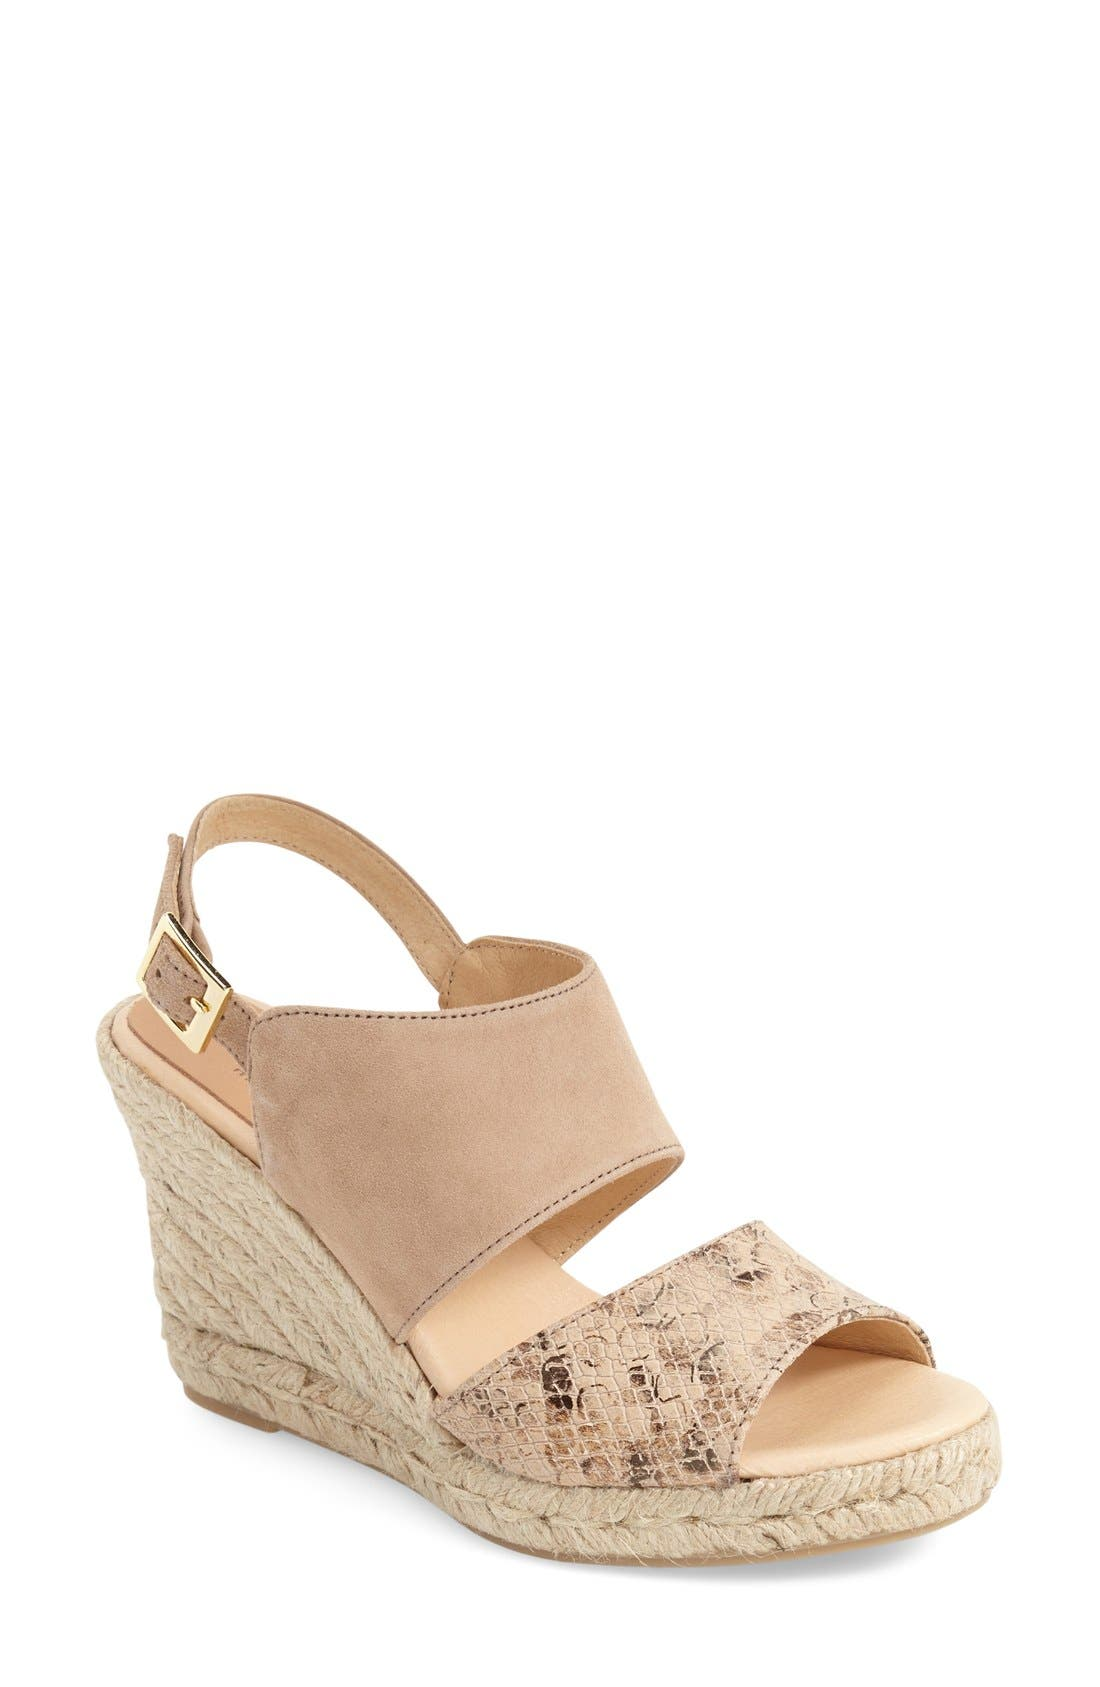 Alternate Image 1 Selected - patricia green 'Elise' Wedge Sandal (Women)